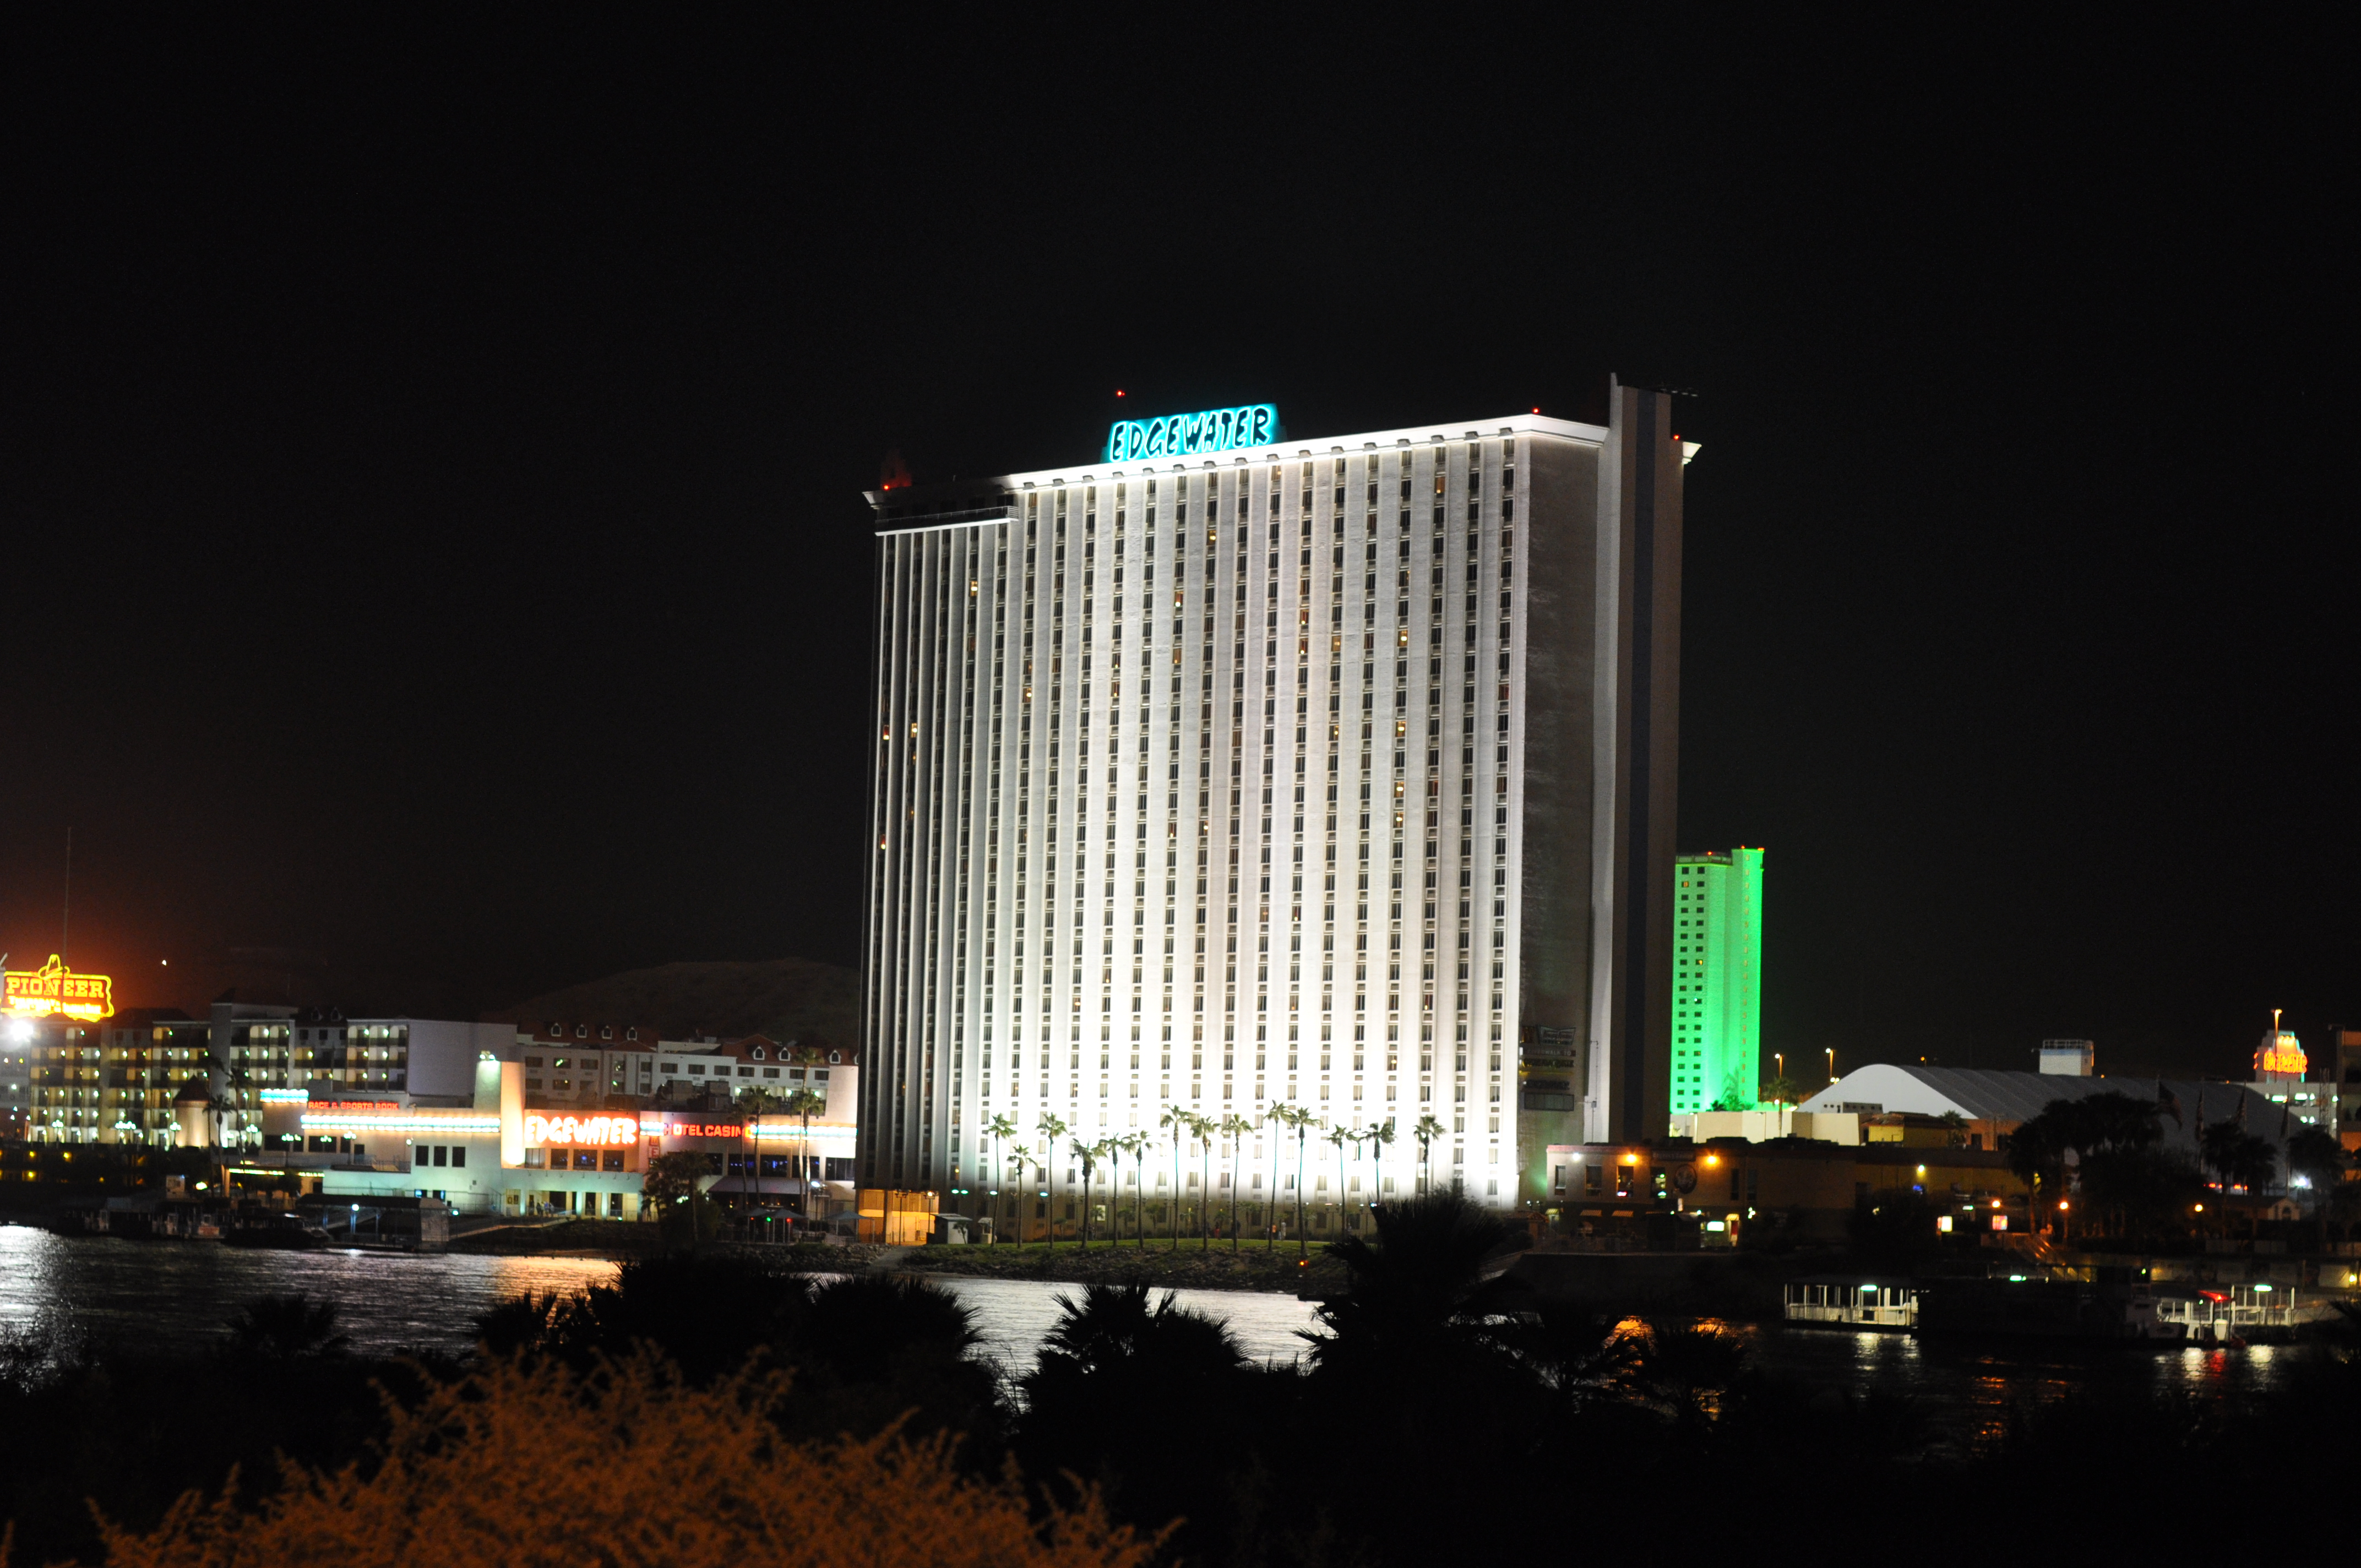 Casino laughlin neveda isle of capri hotel casino colorado